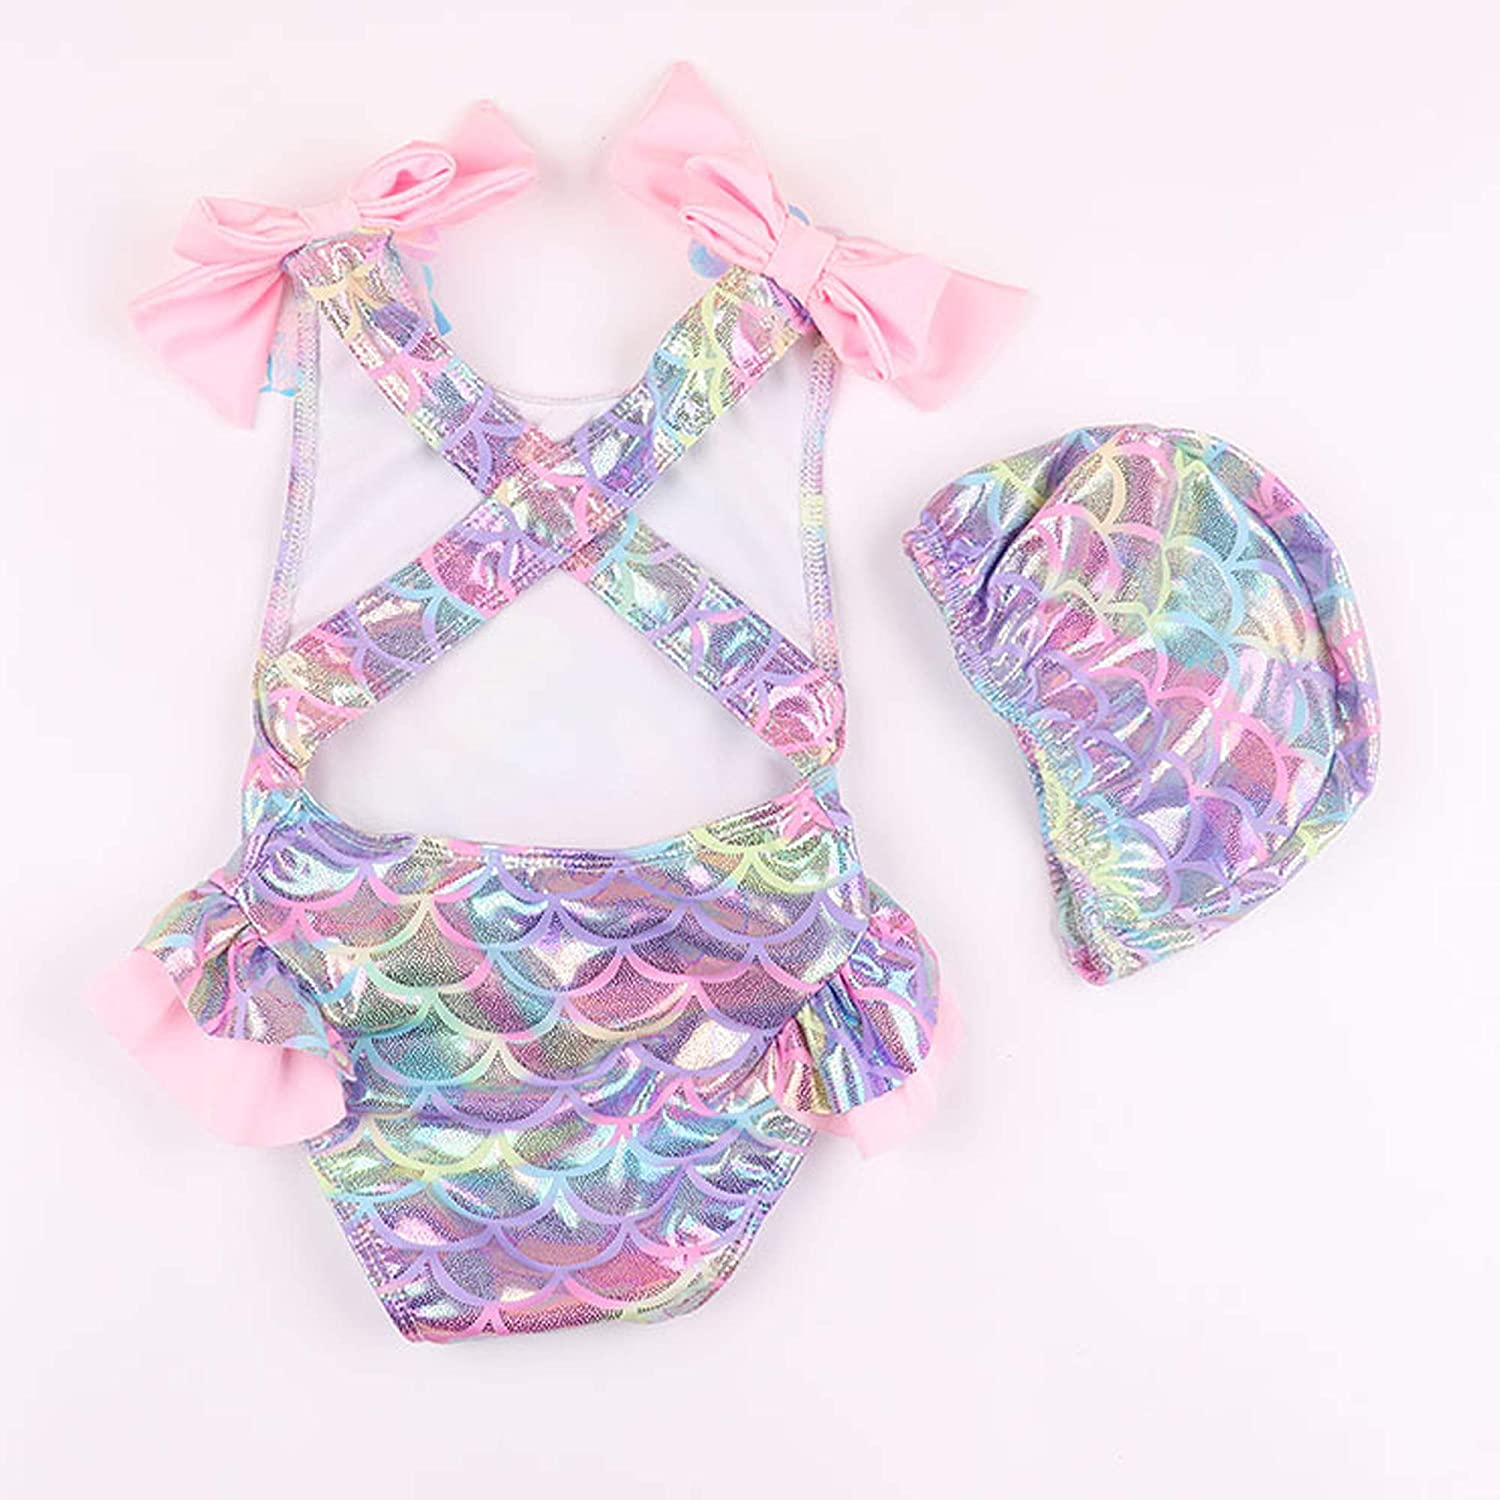 Mermaid Swimsuits One-Piece Scale Infant Toddler Baby GirlsRomper Bathing Suit